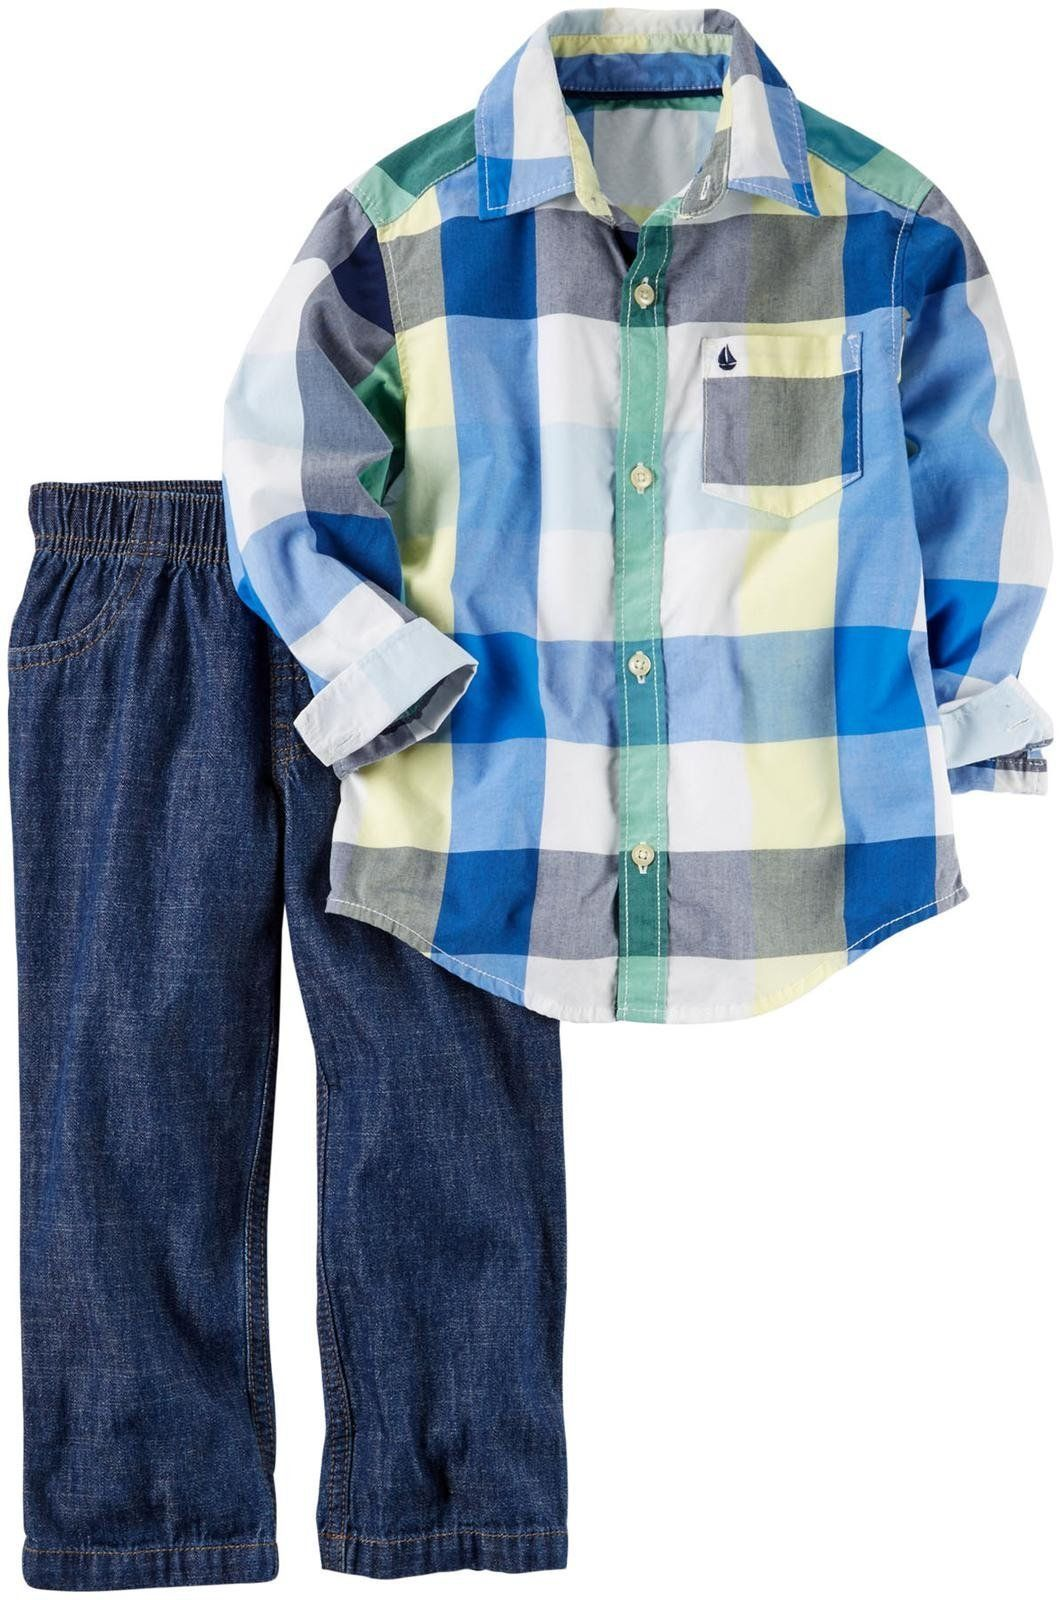 Blue flannel outfits for guys  Carters Boys  Pc Playwear Sets g Plaid T  Be sure to check